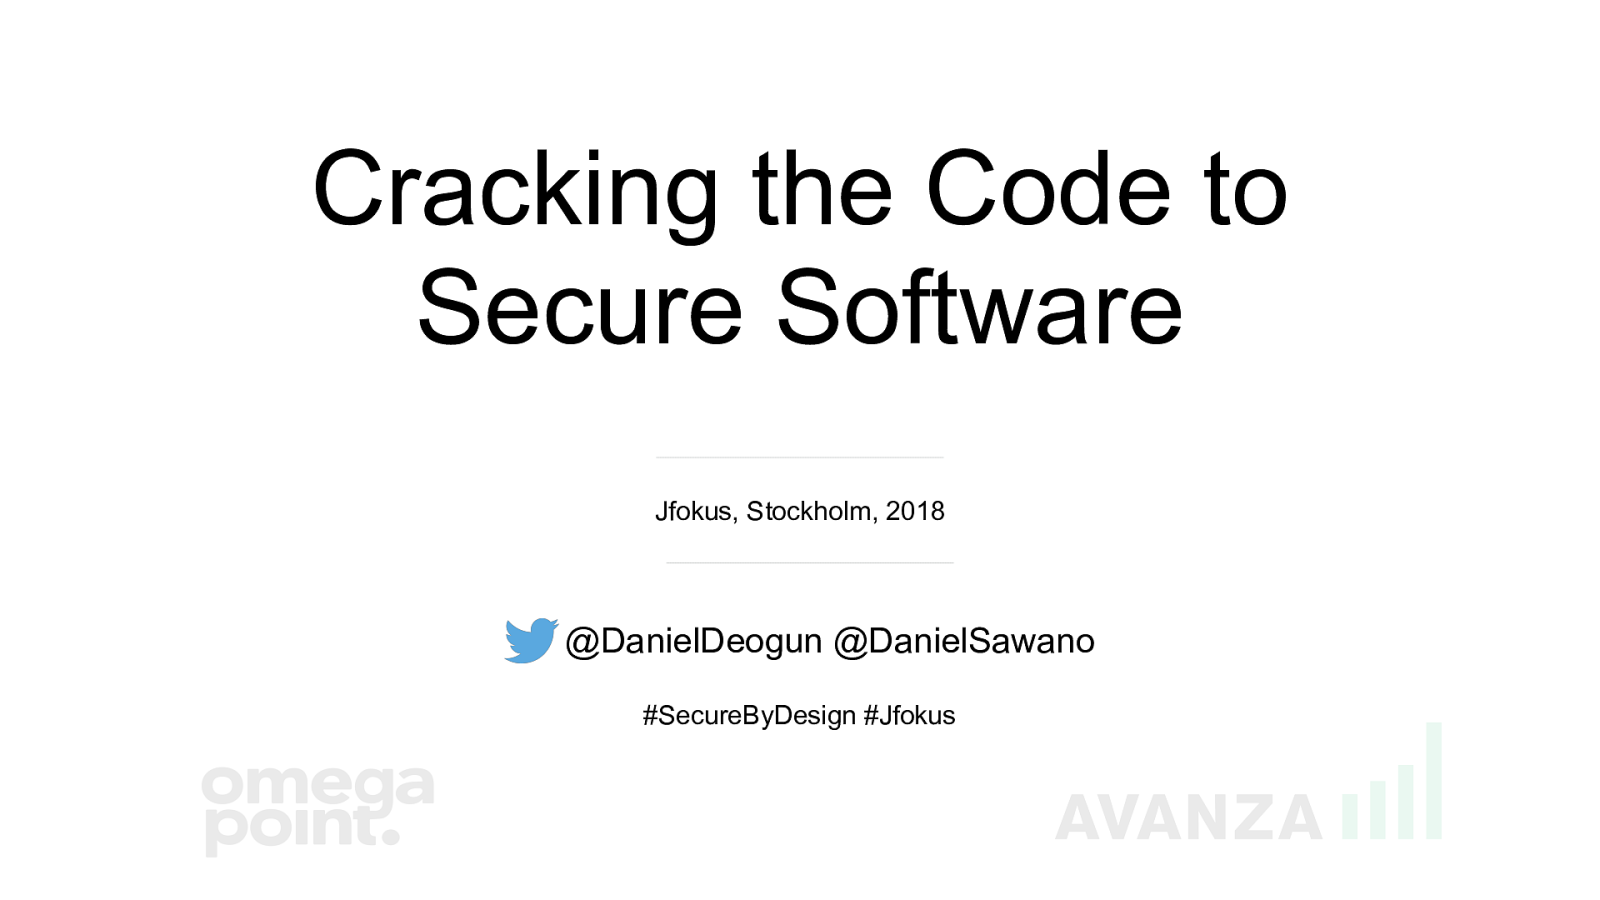 Cracking the Code to Secure Software